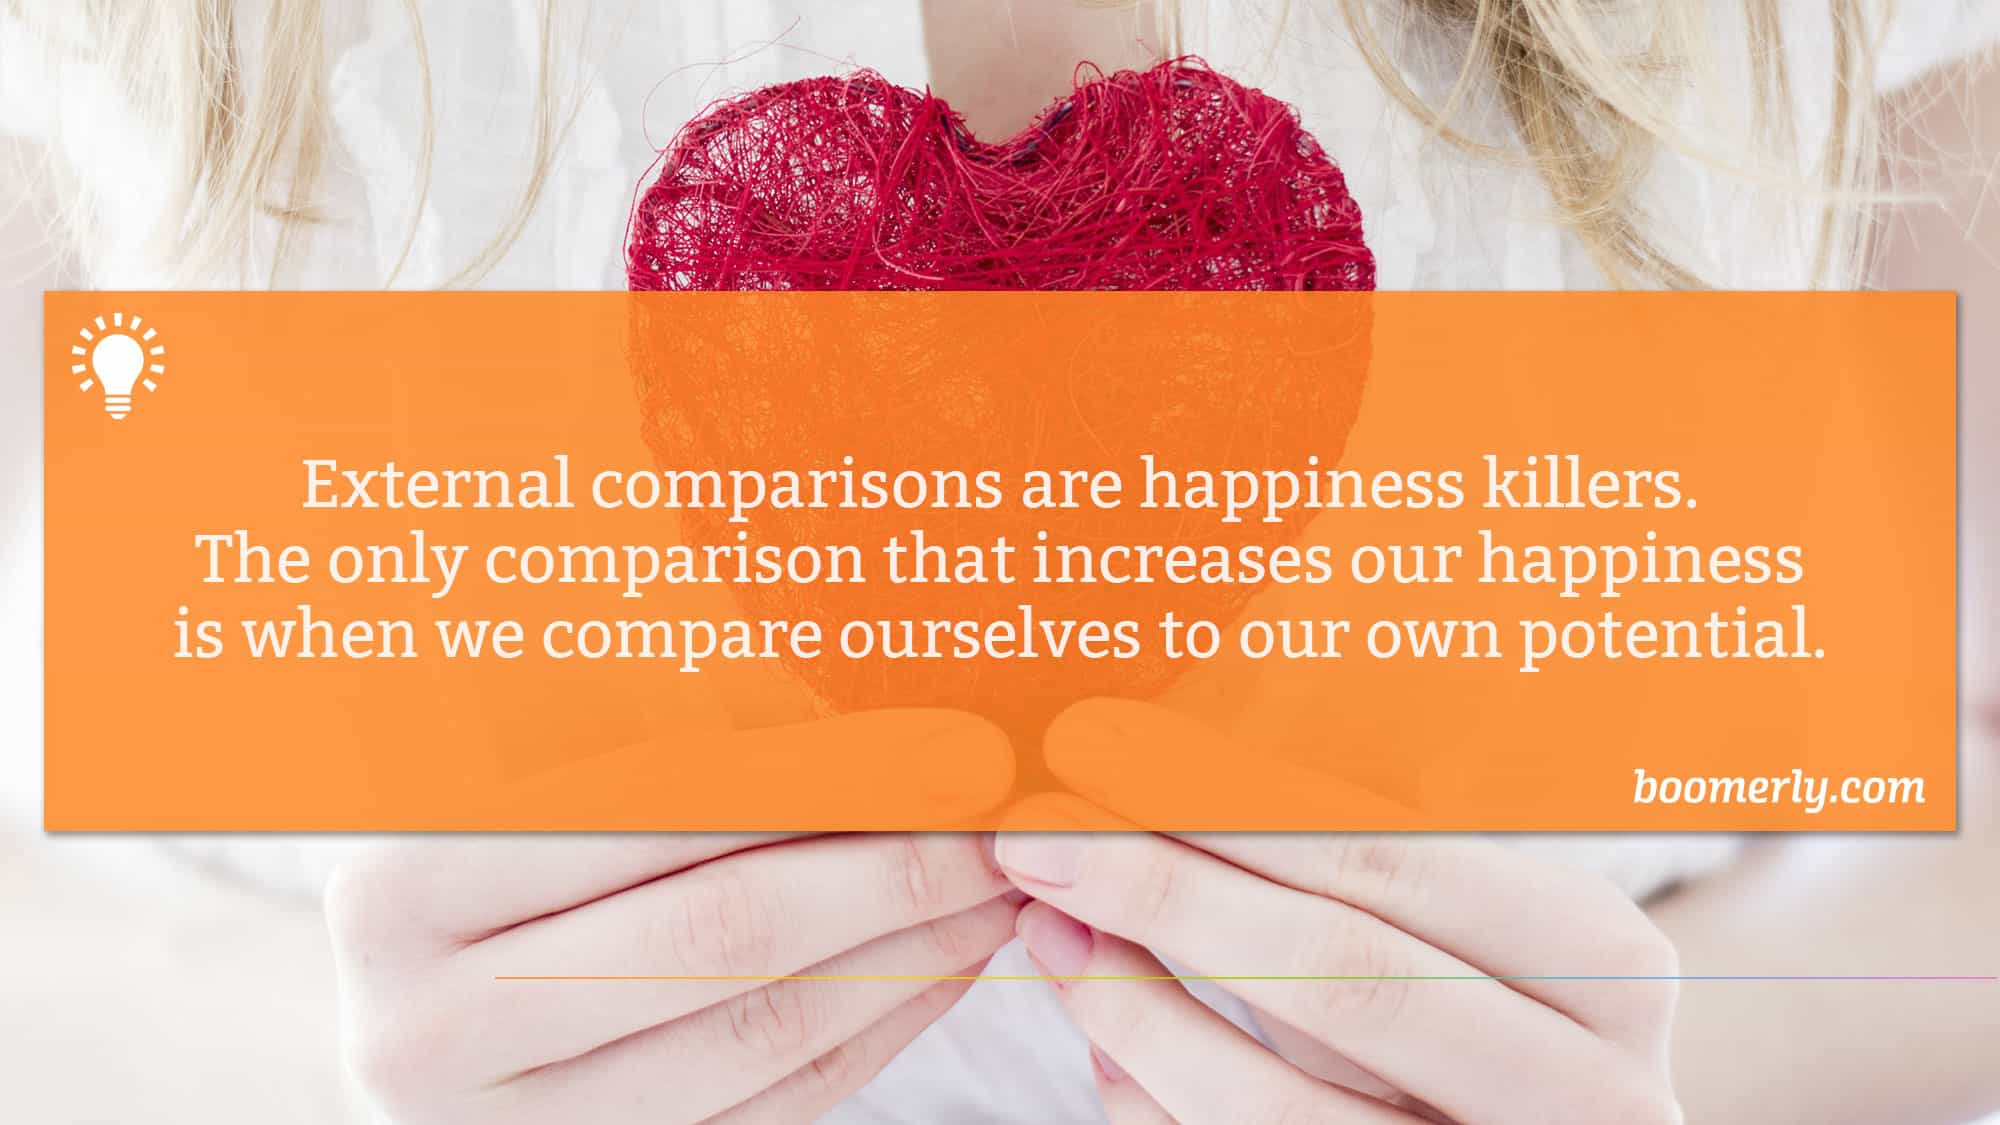 External comparisons are happiness killers. The only comparison that increases our happiness is when we compare ourselves to our own potential.